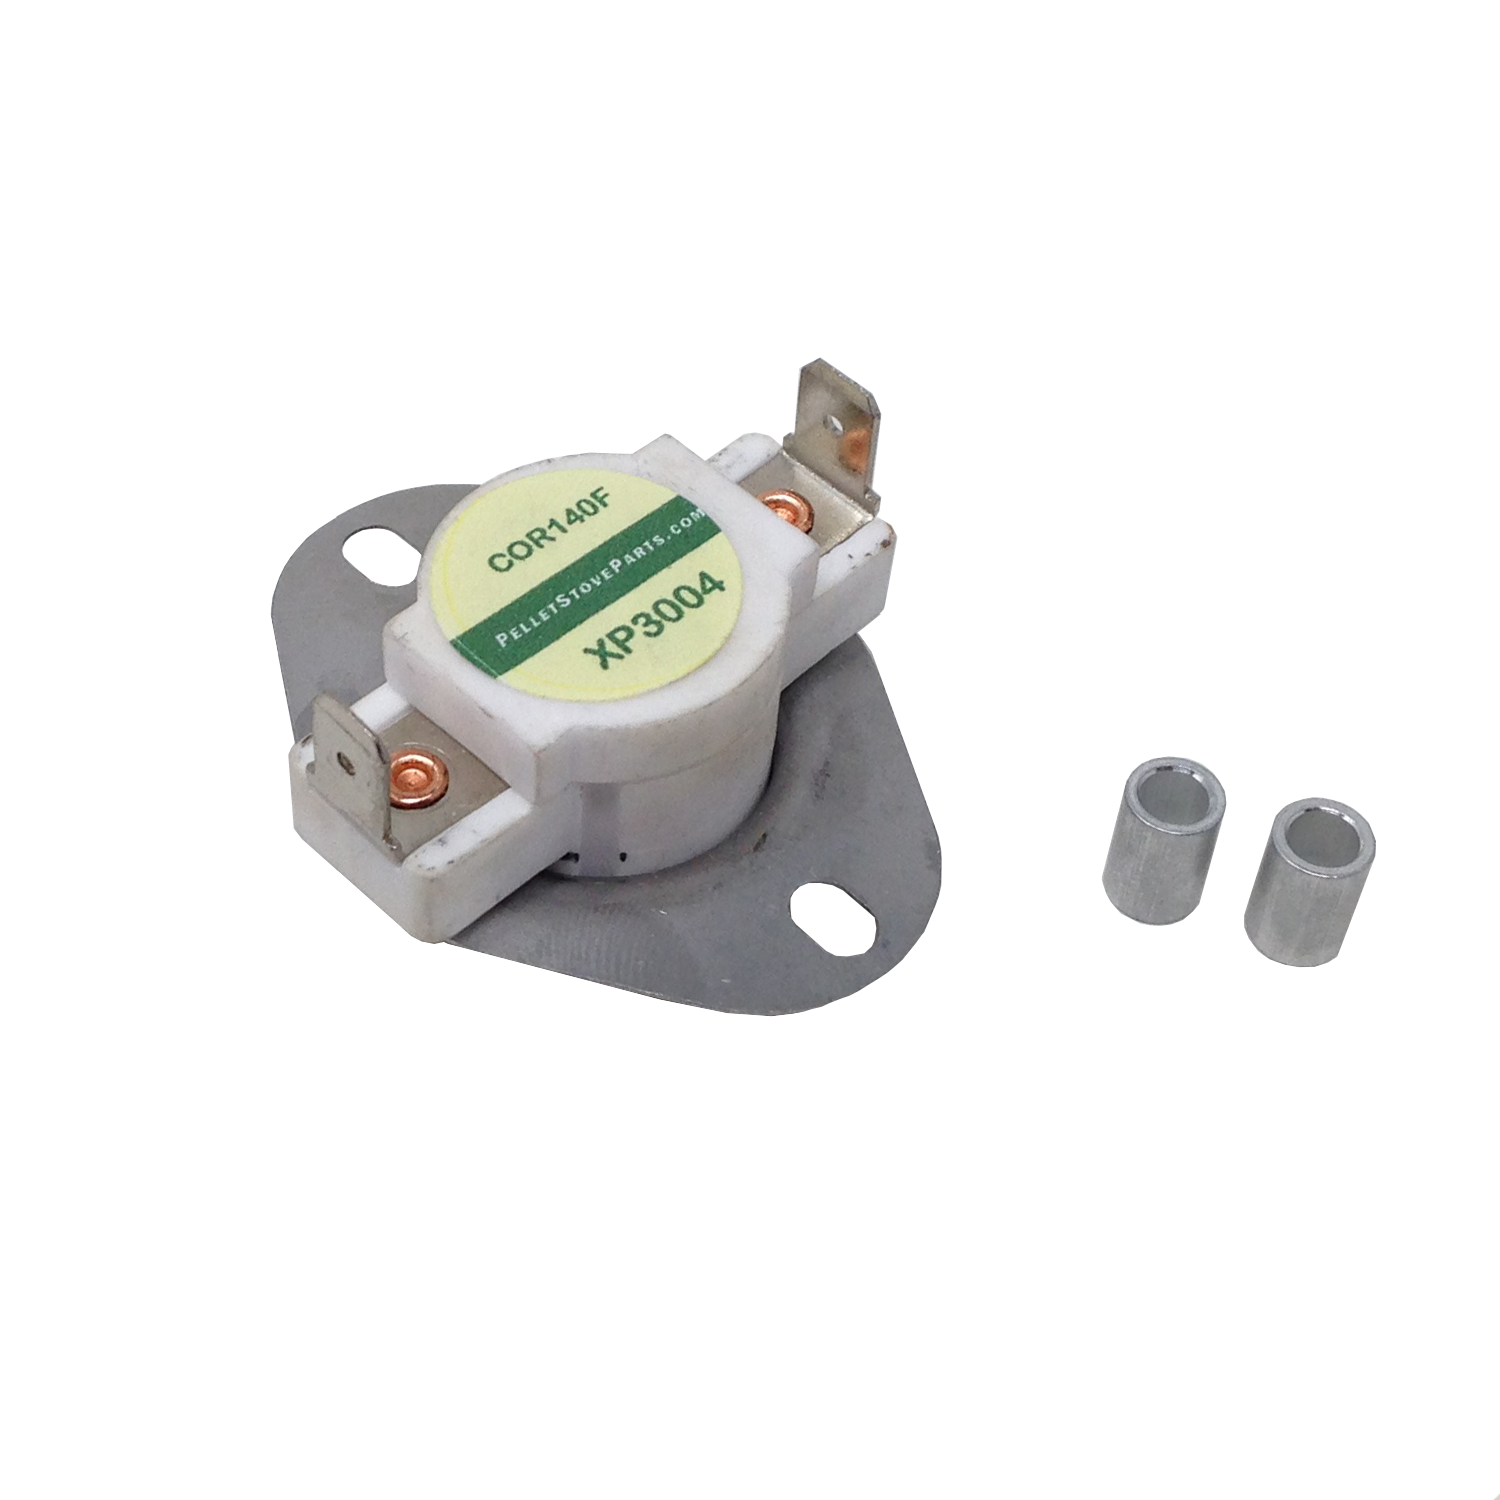 Whitfield Low Limit 140F Ceramic Switch, 12057601-AMP